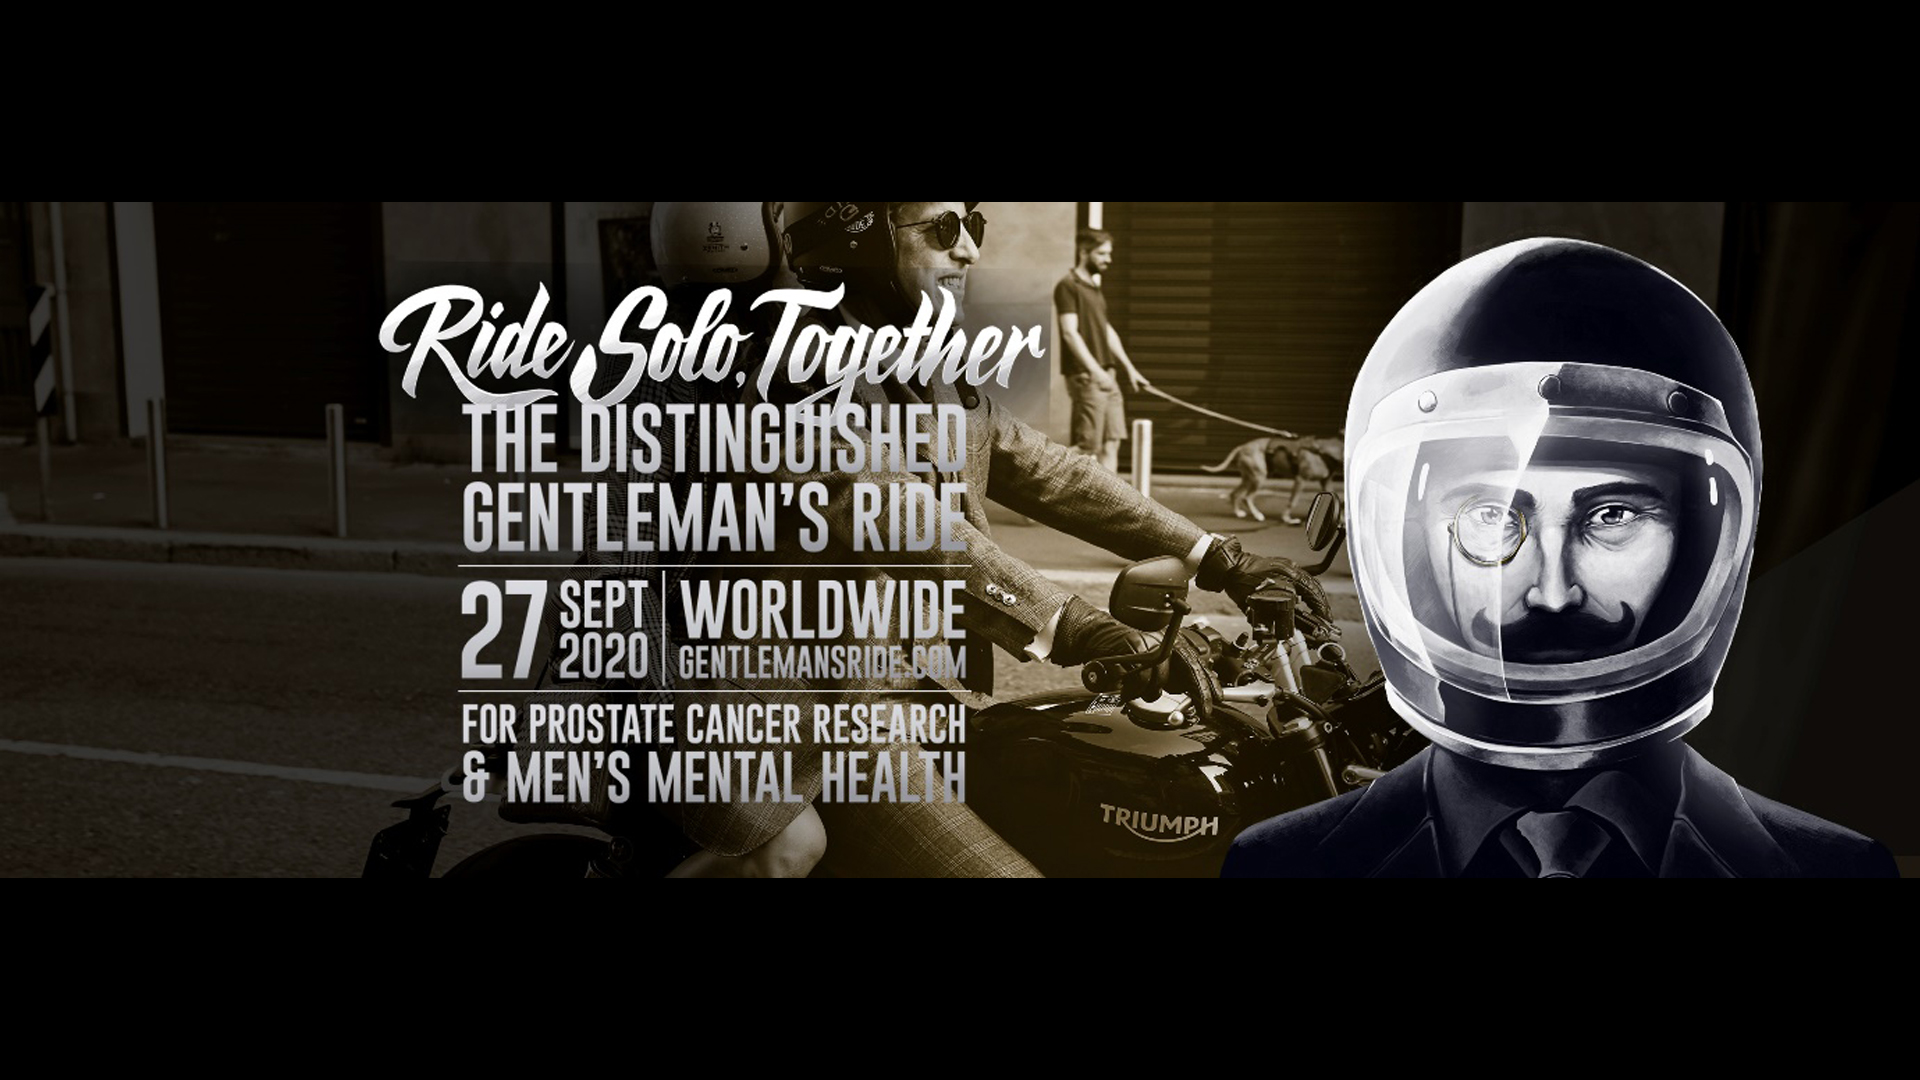 2020 Distinguished Gentleman's Ride 9月27日(日)開催